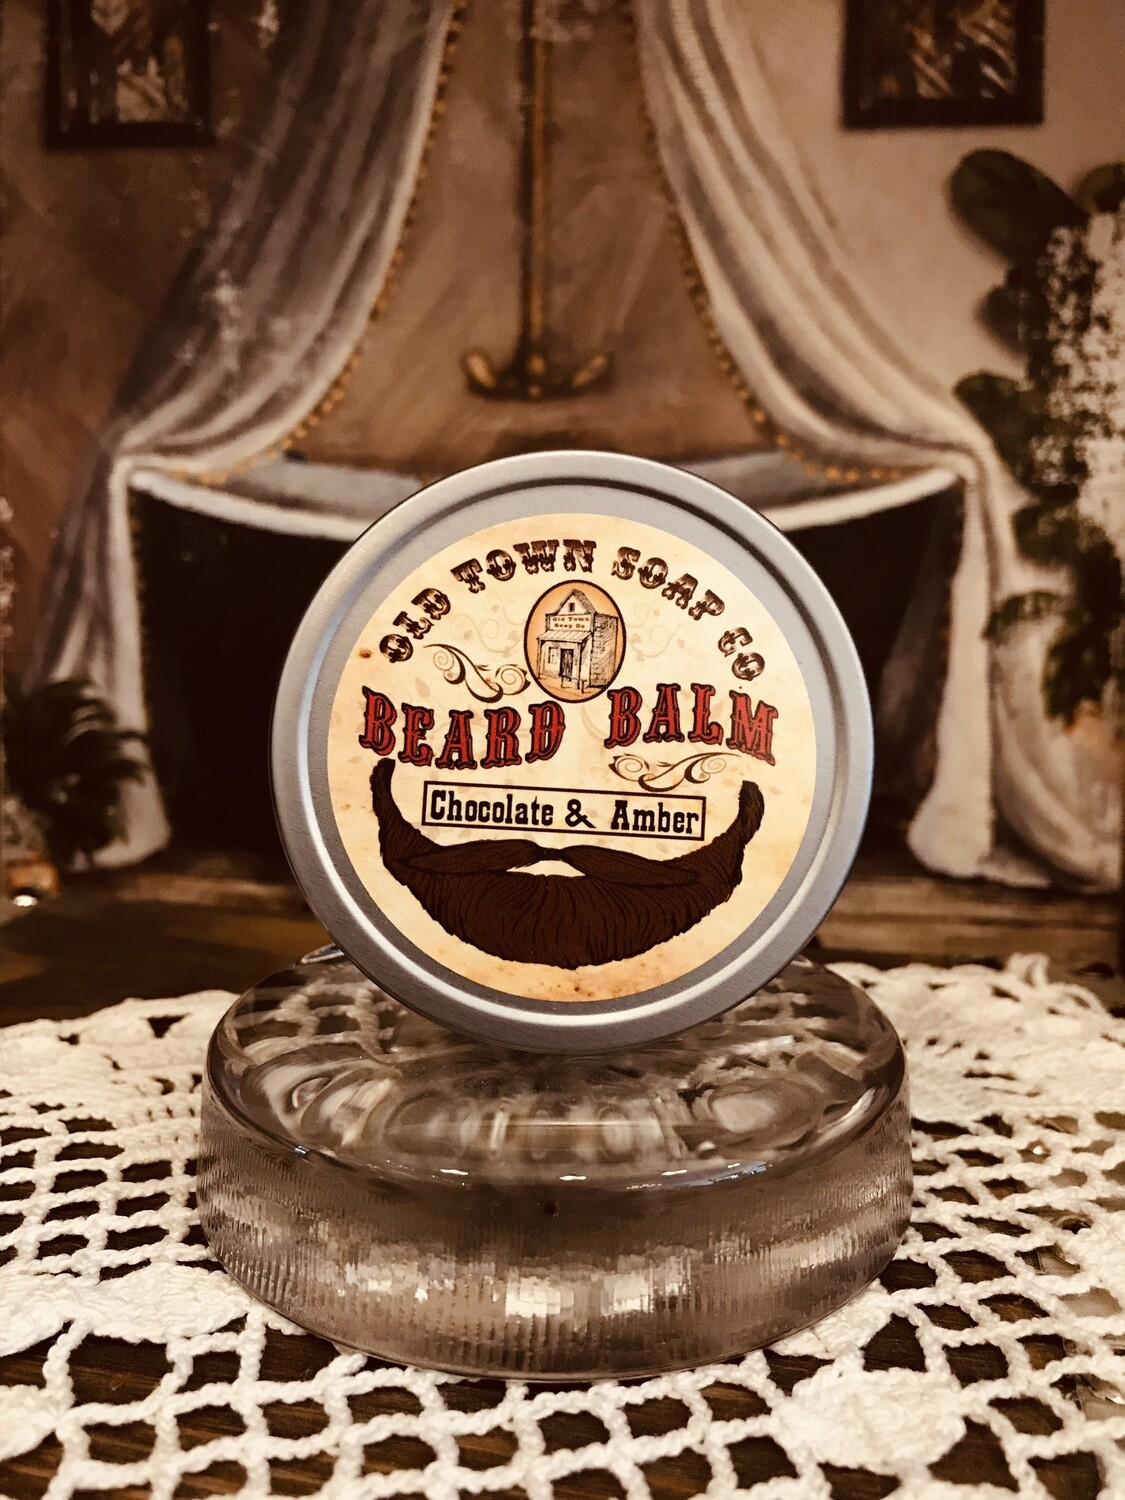 Chocolate & Amber -Beard Balm